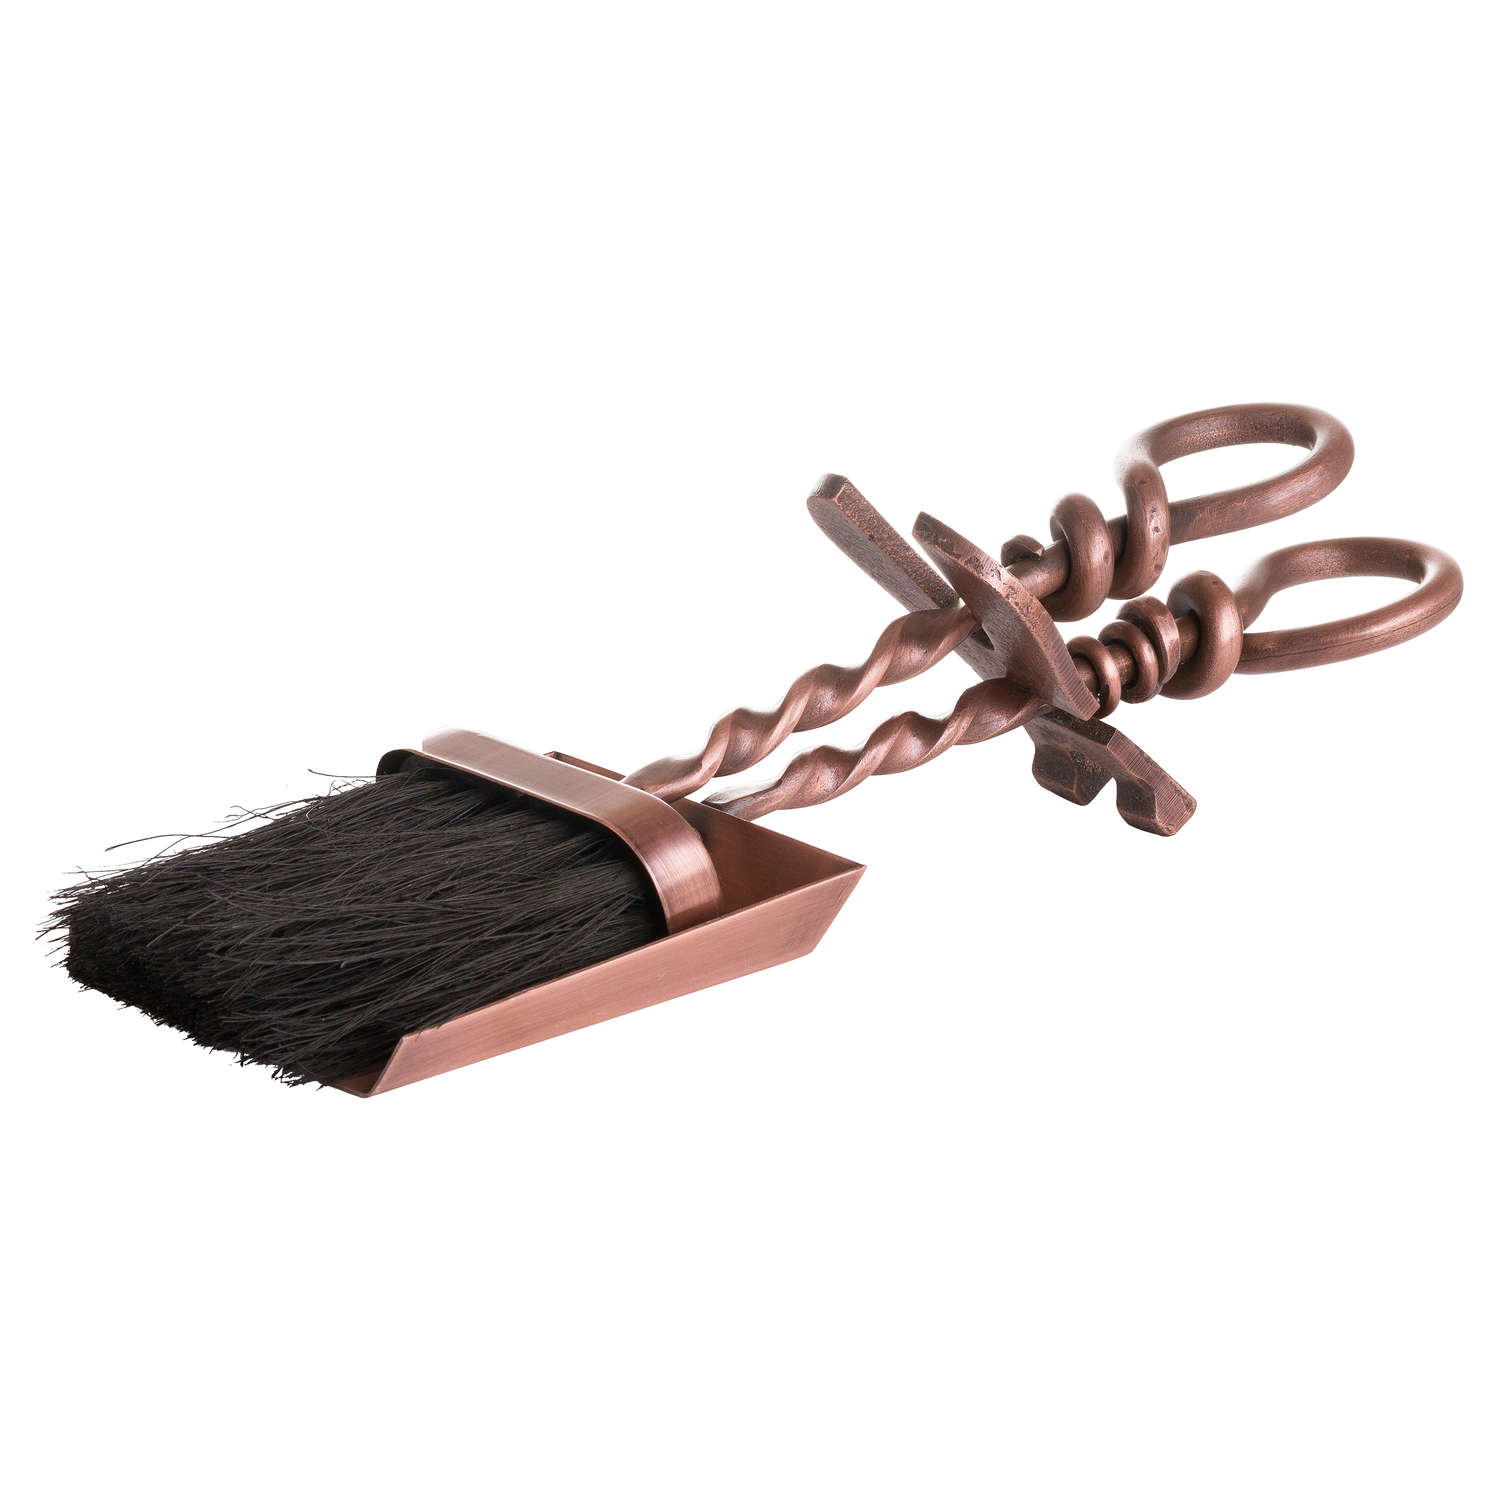 Copper Finish Hearth Tidy Set With Hand Turned Loop Handle - Cosy Home Interiors